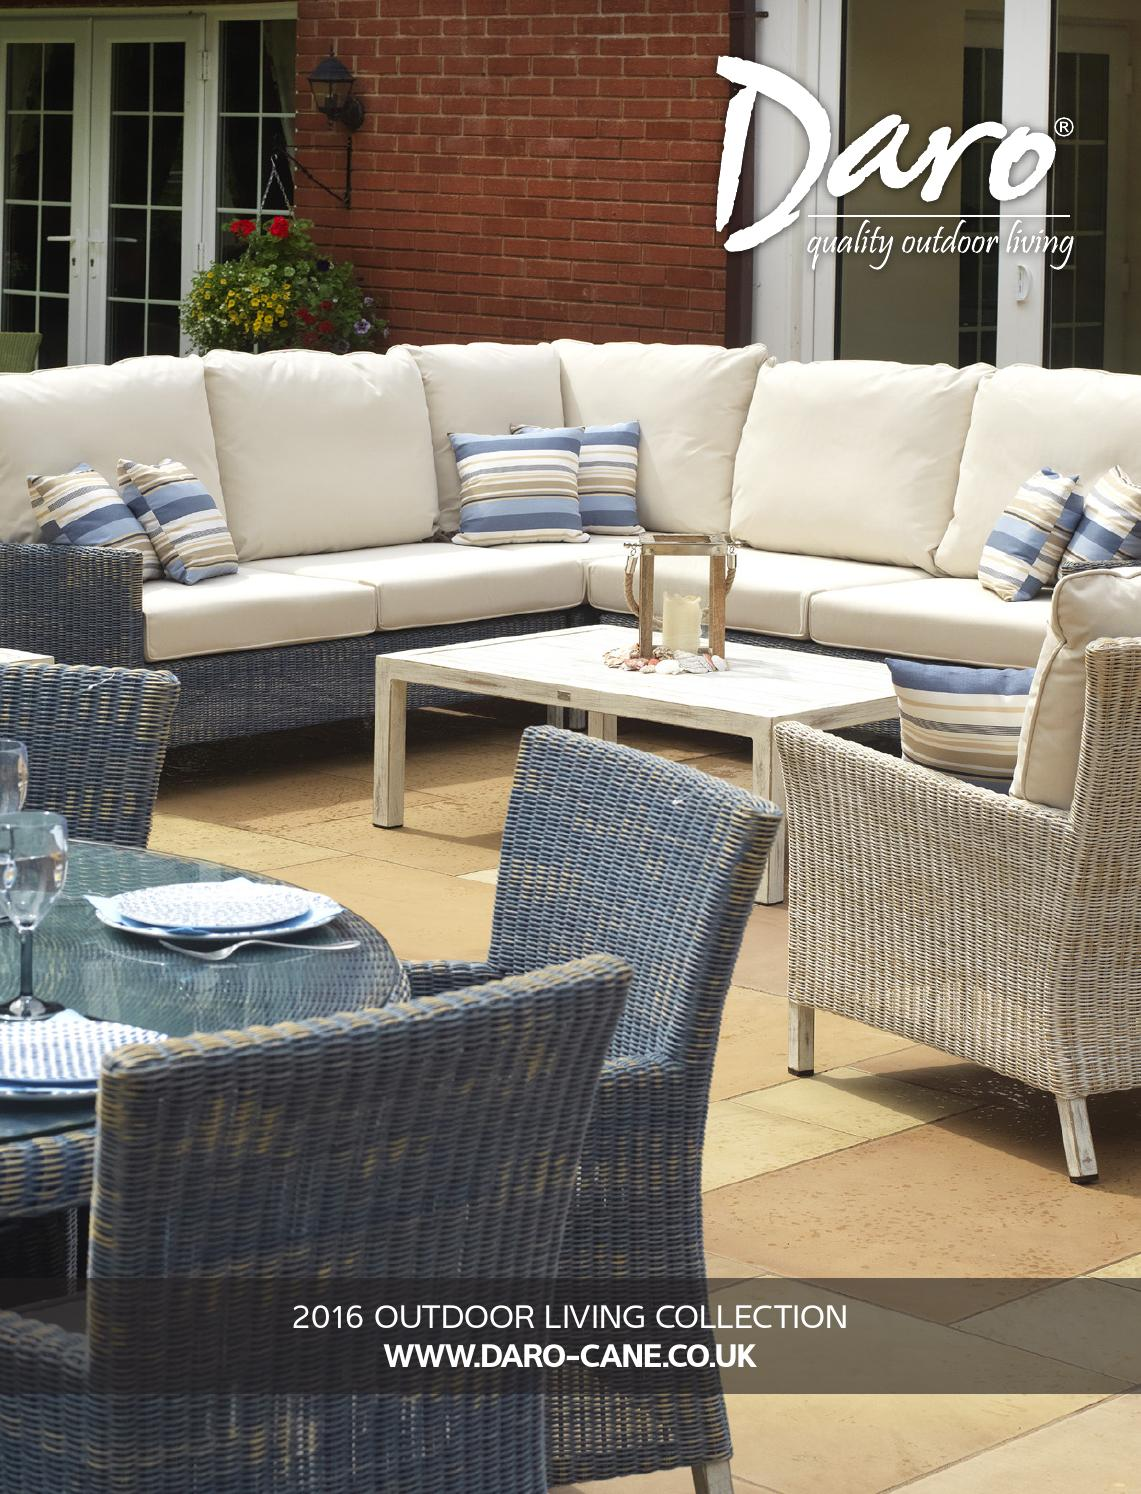 Daro Outdoor Living Collection 2016 by Daro (Trading) Ltd ... on Outdoor Living Ltd id=28624